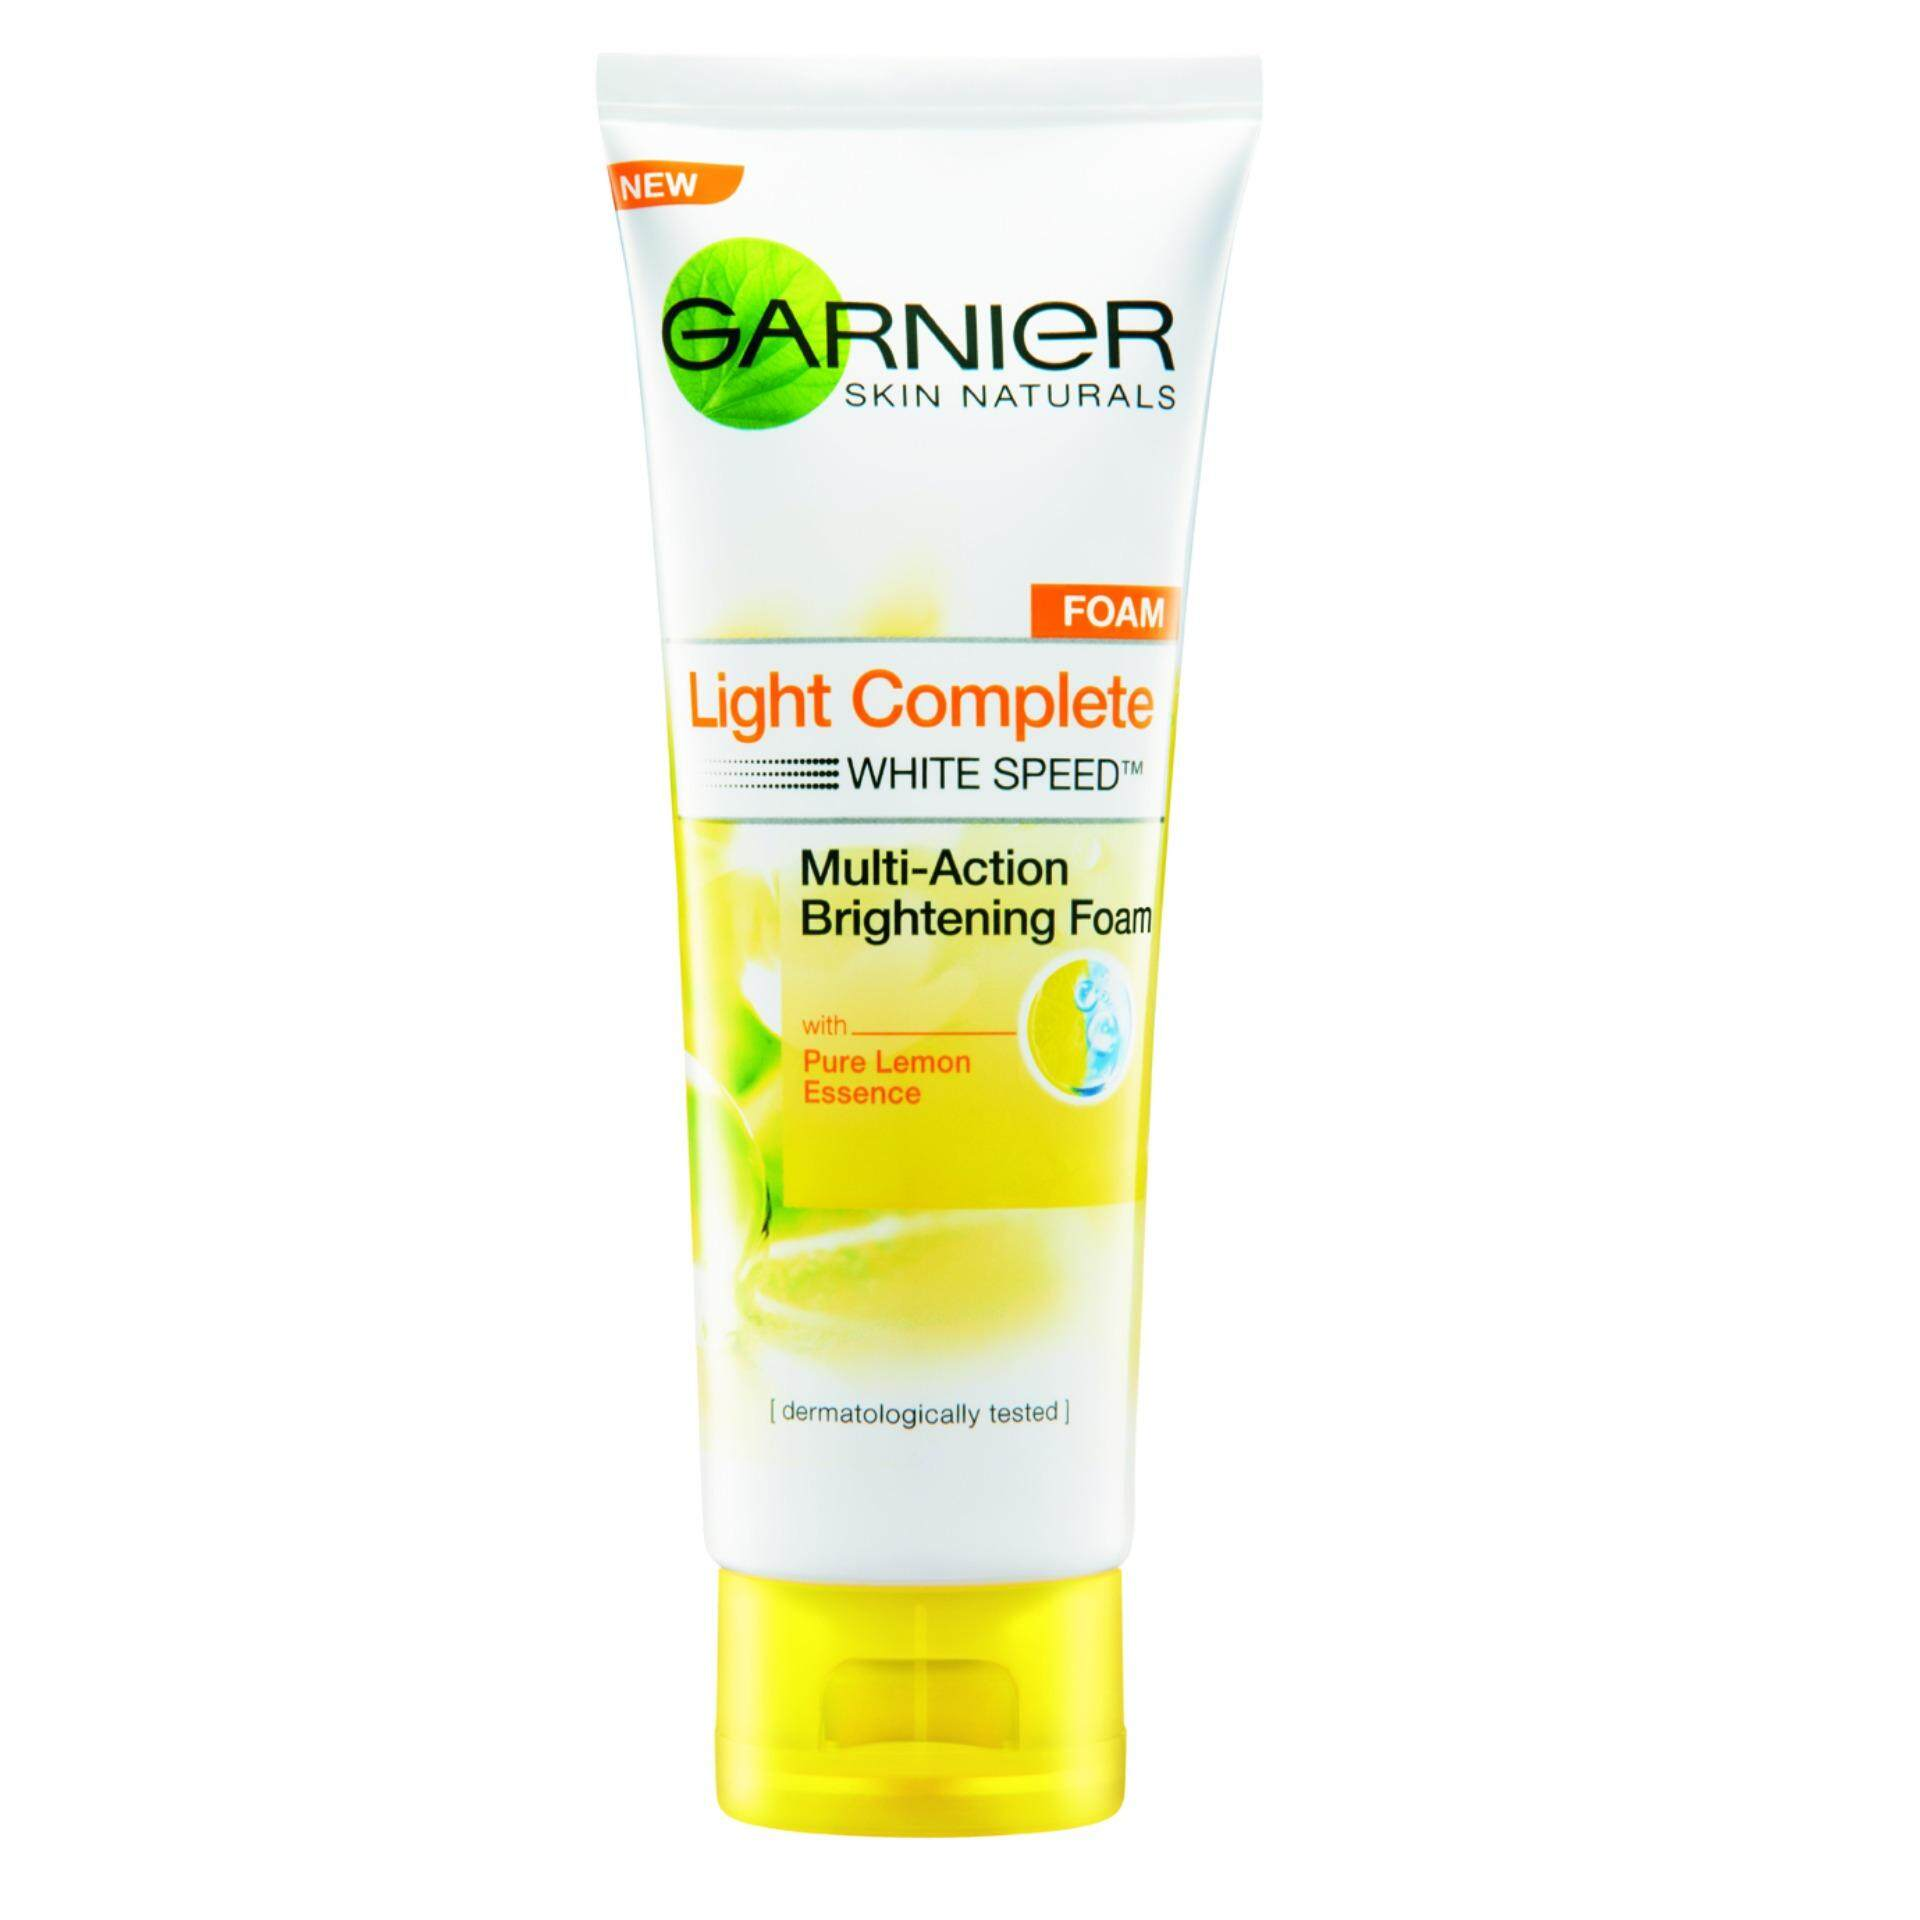 Garnier Reviews Ratings And Best Price In Kl Selangor Malaysia Light Complete White Speed Super Foam 10 100ml